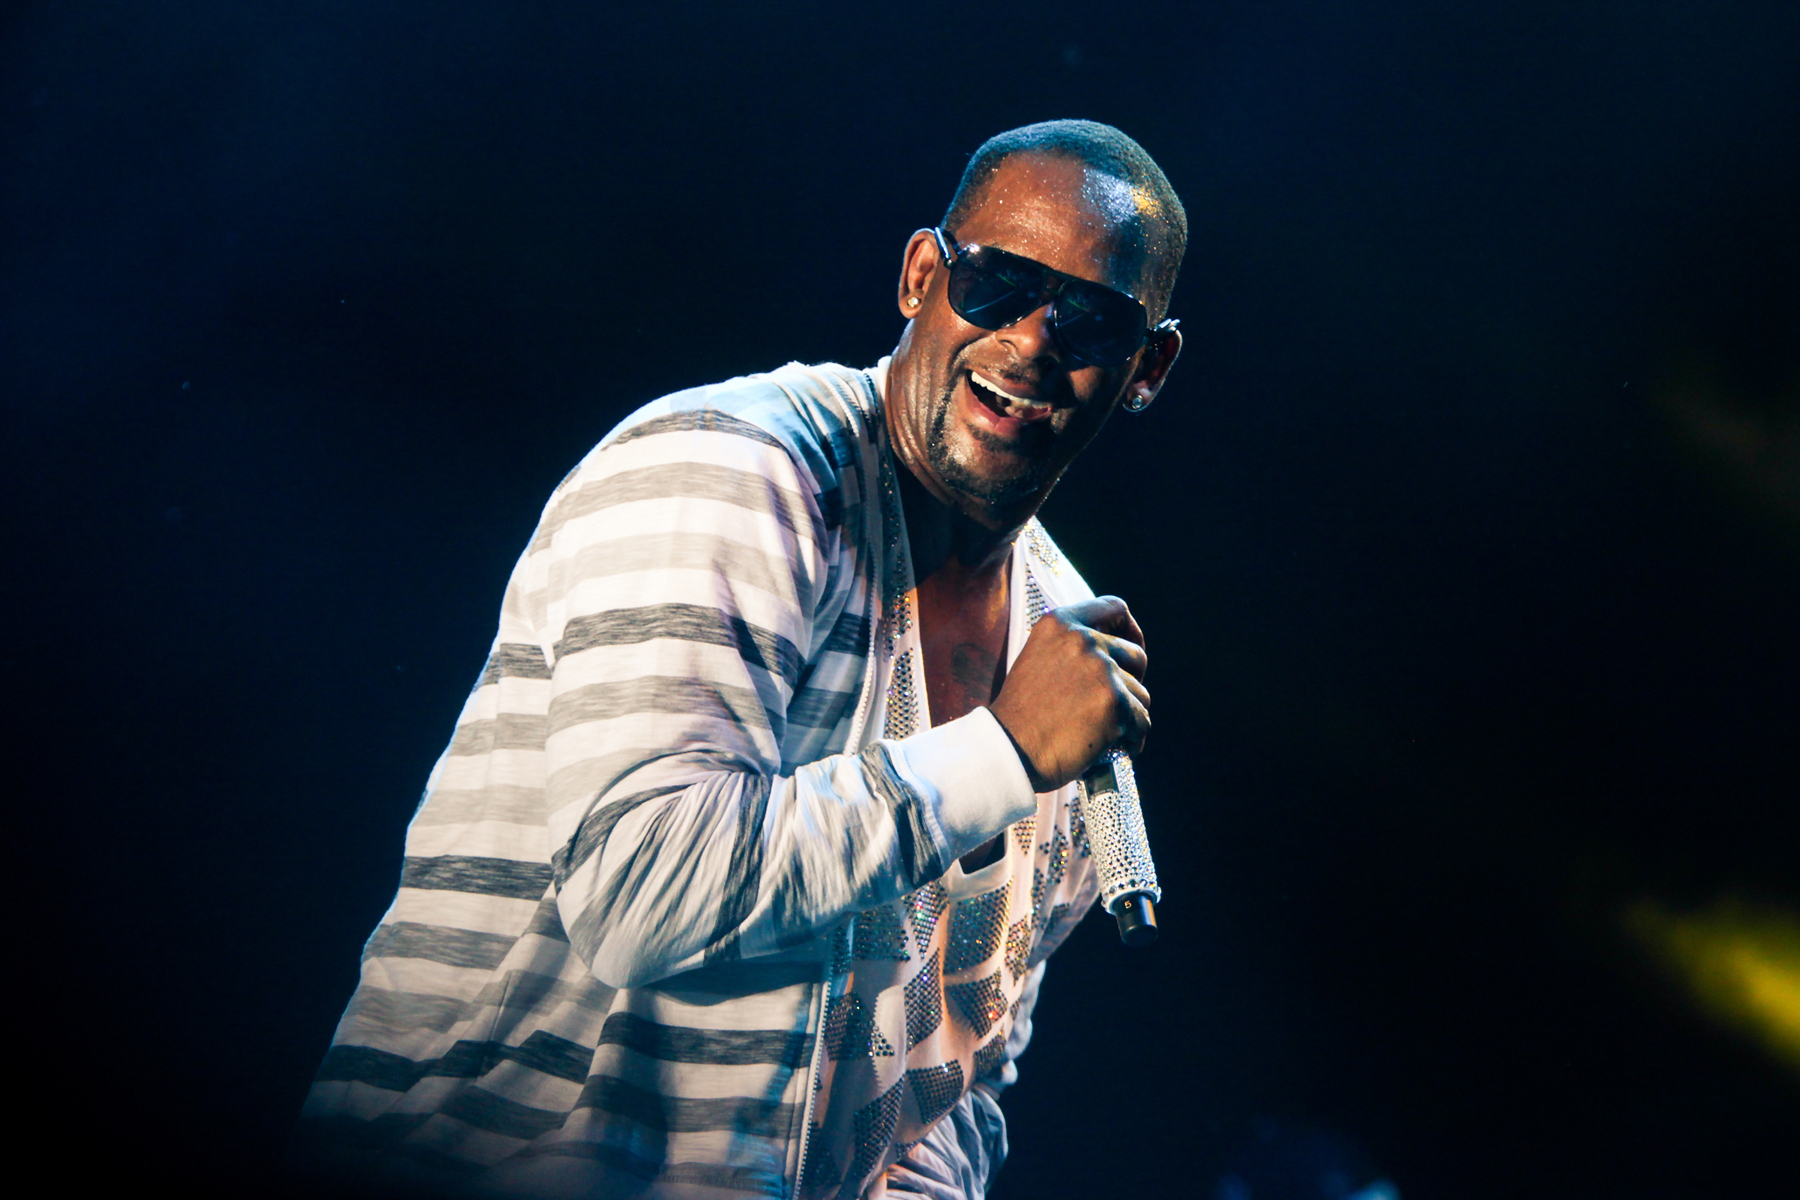 Justin Bieber and R. Kelly Join Forces on R&B Song